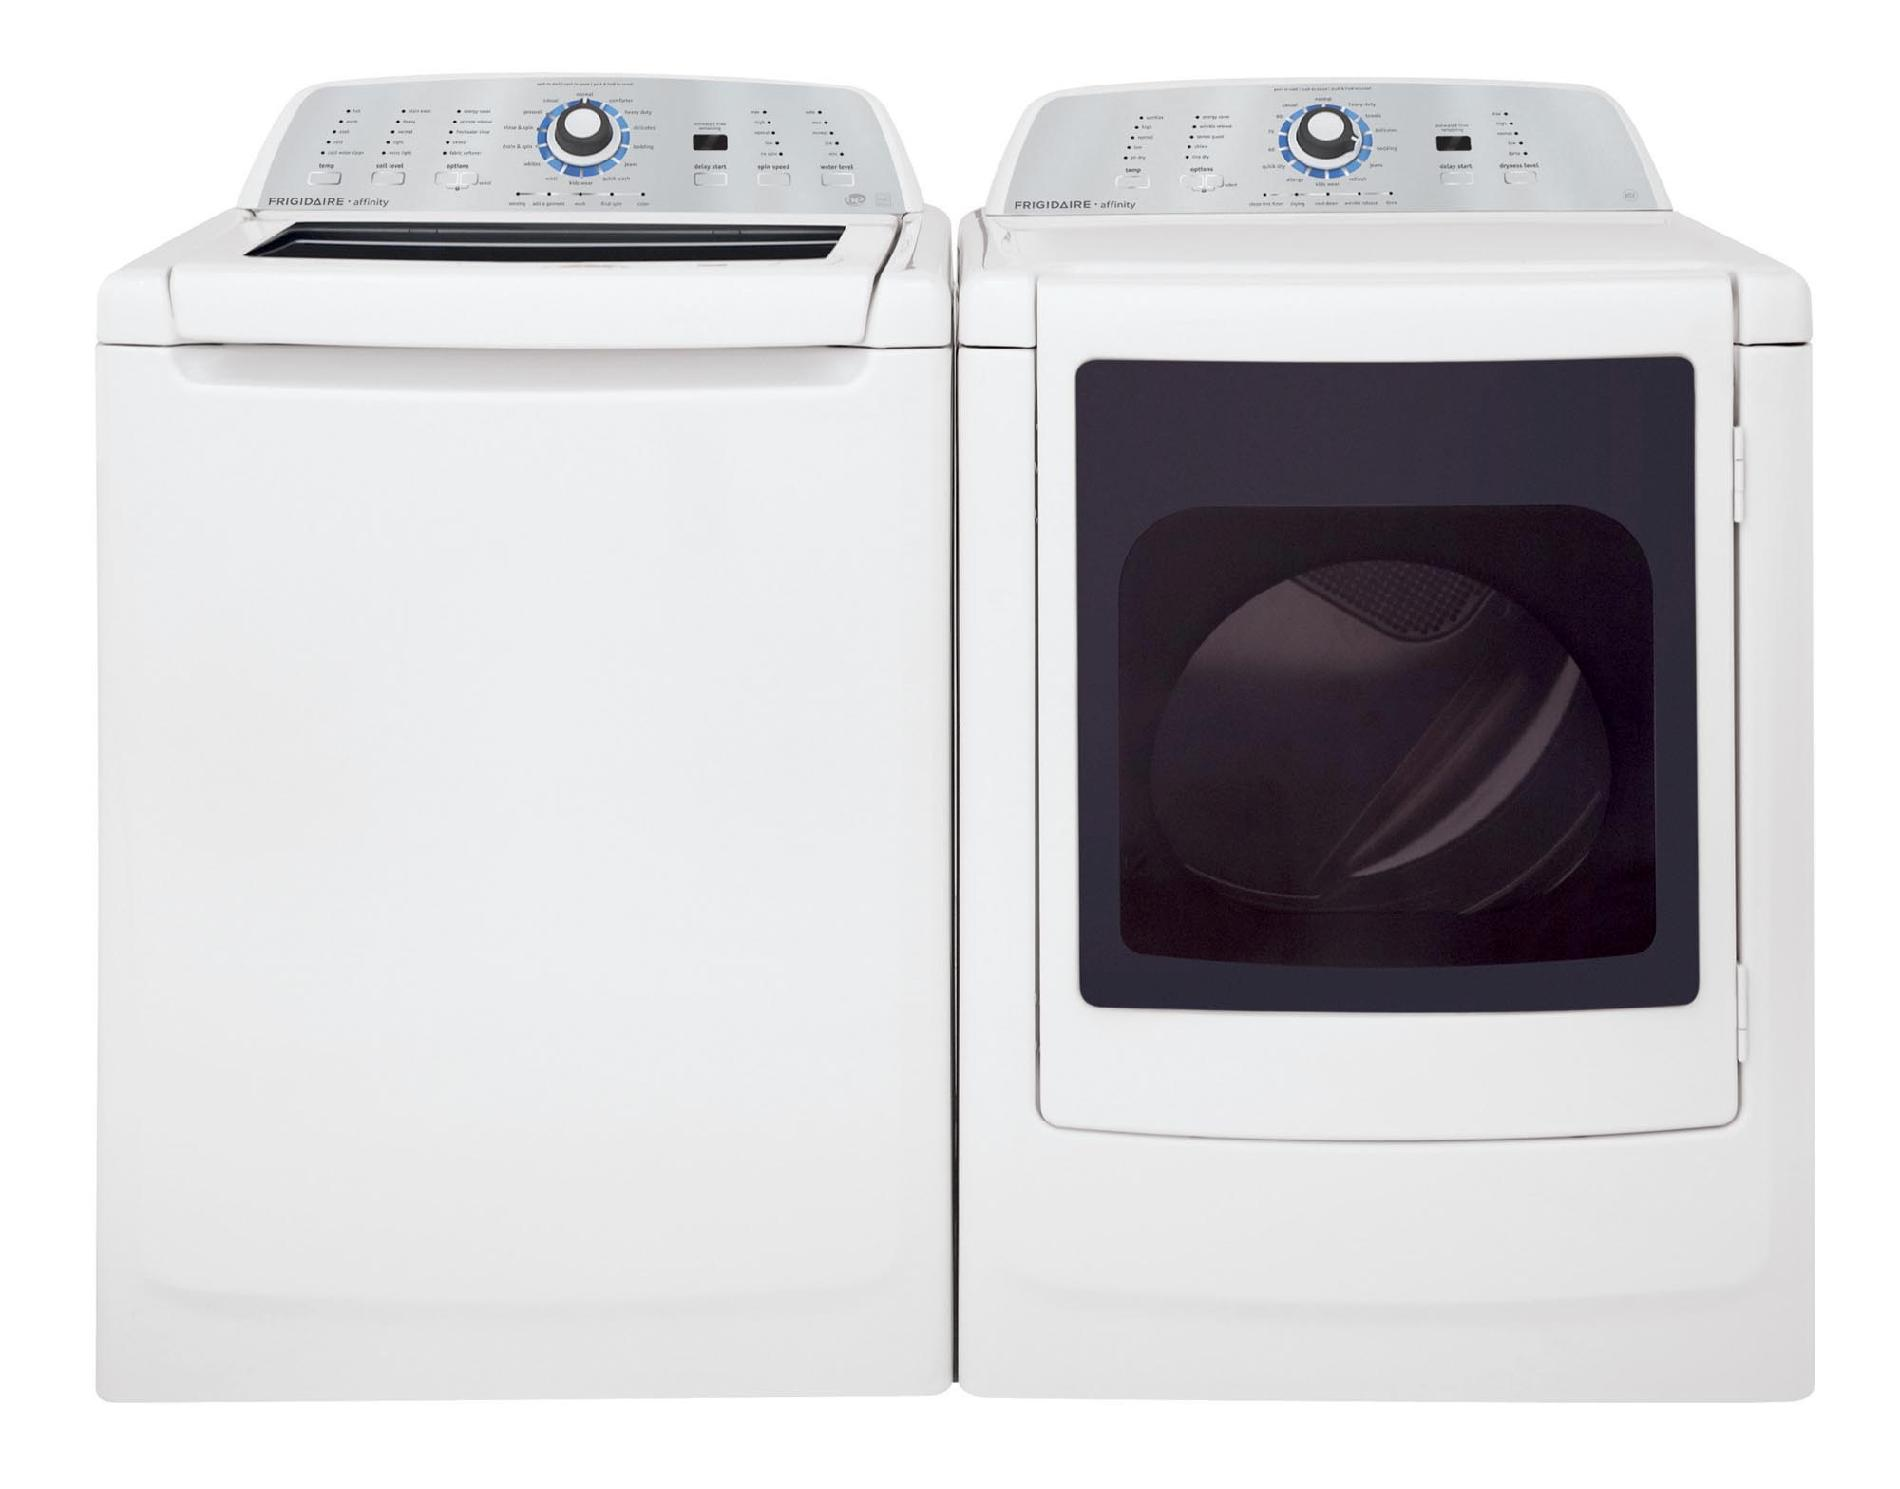 Frigidaire Affinity 7.0 cu. ft. Gas Dryer w/ Stainless-Steel Tumbler - White